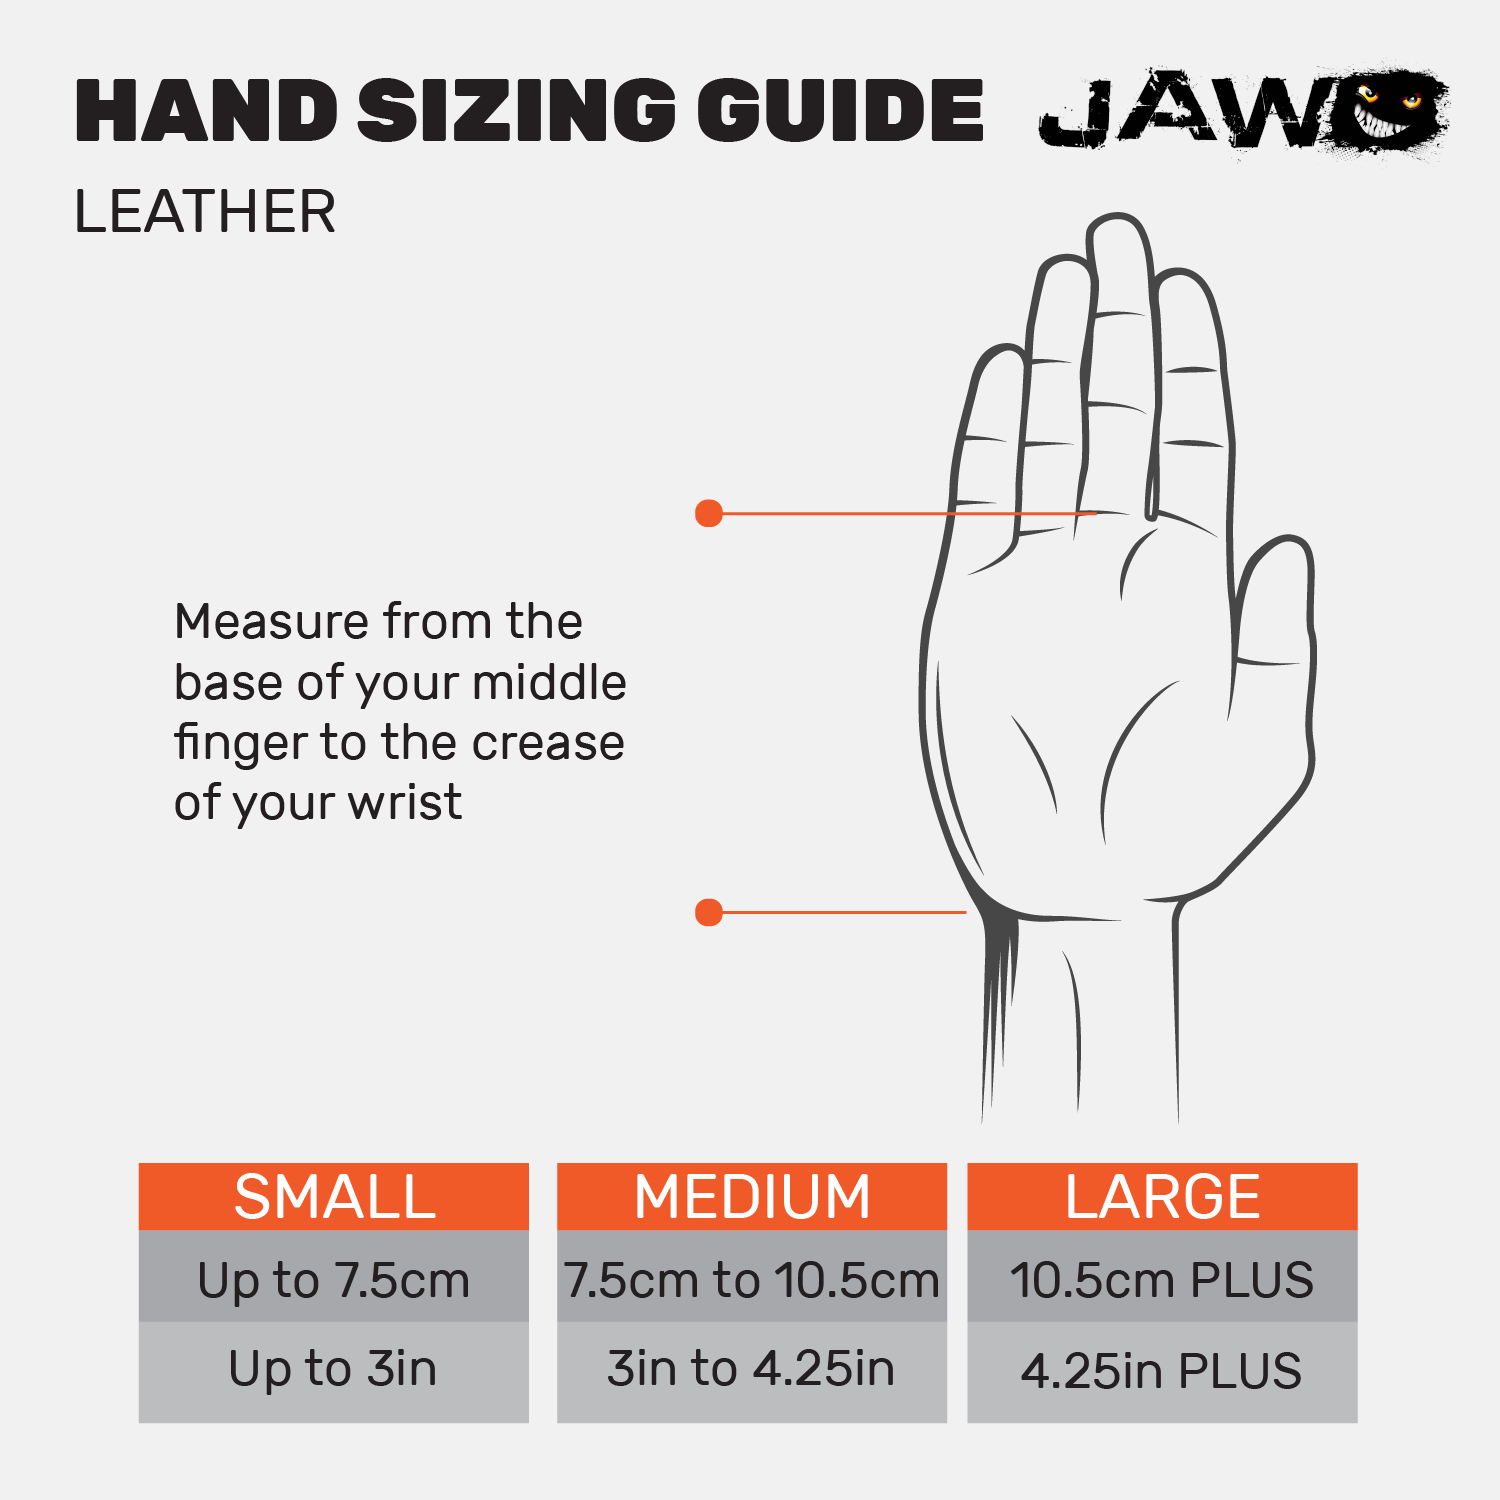 jaw-leather-sizing-guide.png